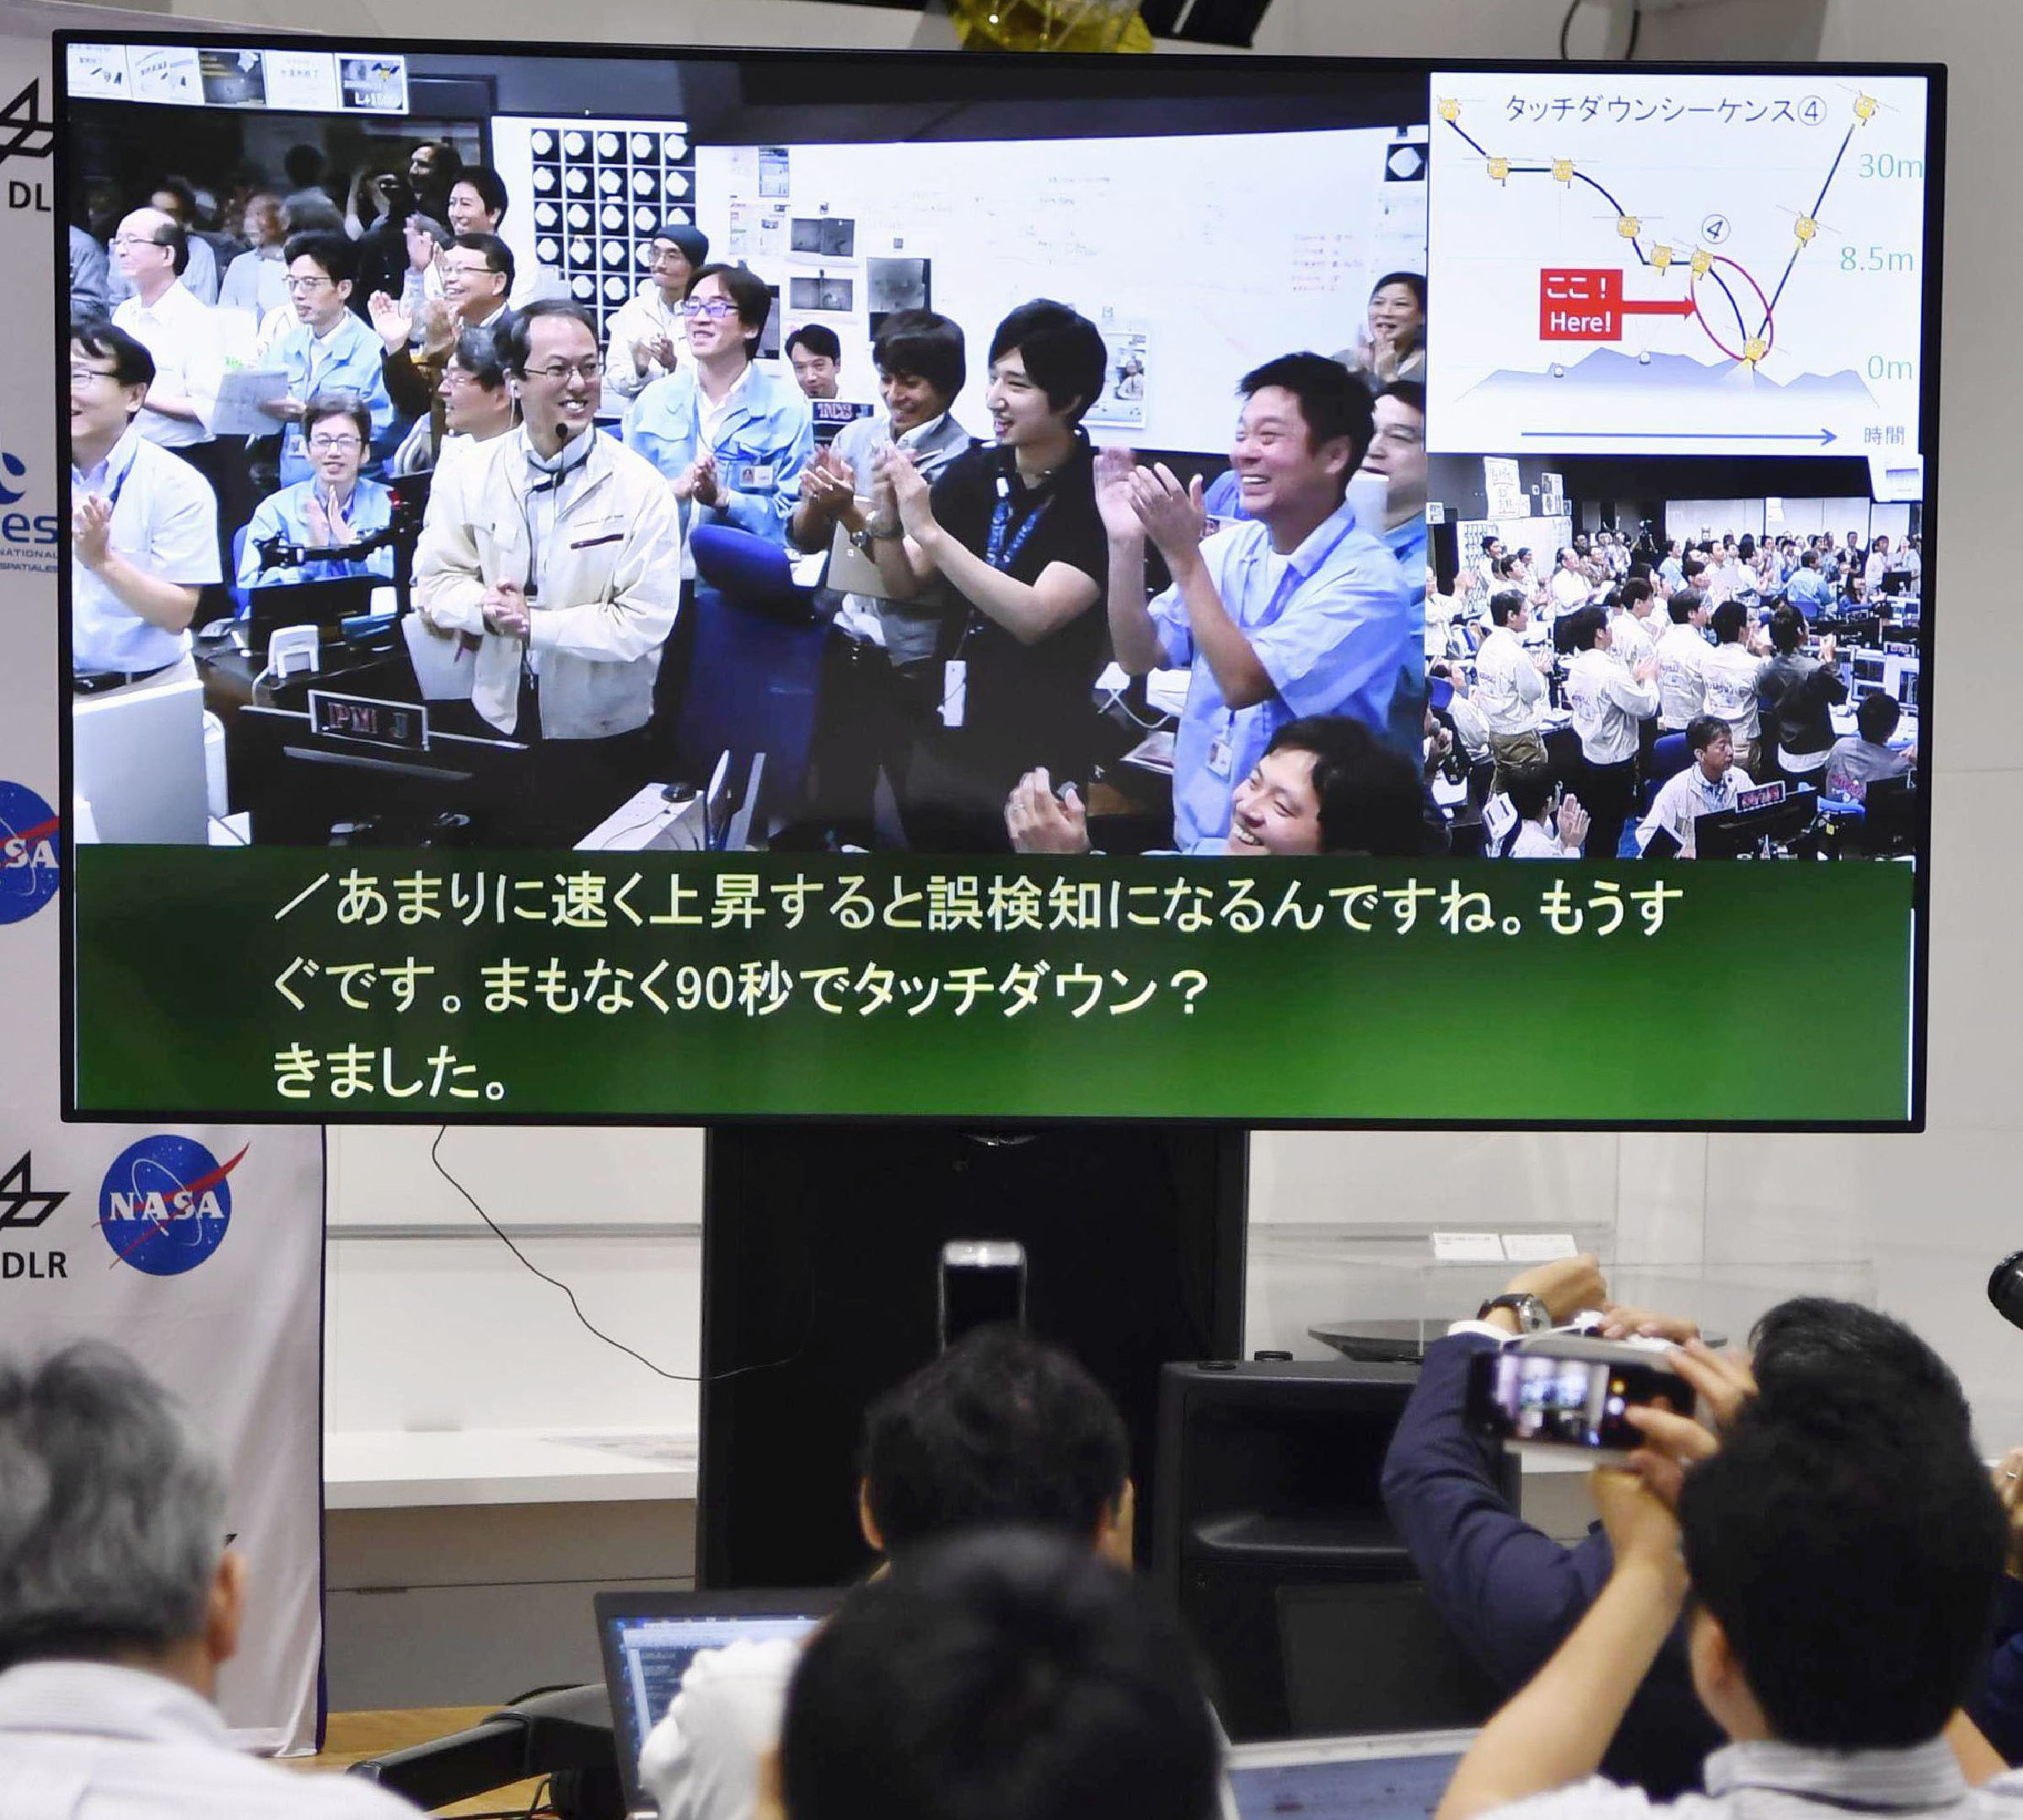 A monitor shows Hayabusa2 project team members celebrating the spacecraft's second touchdown on an asteroid in the control room in Japan